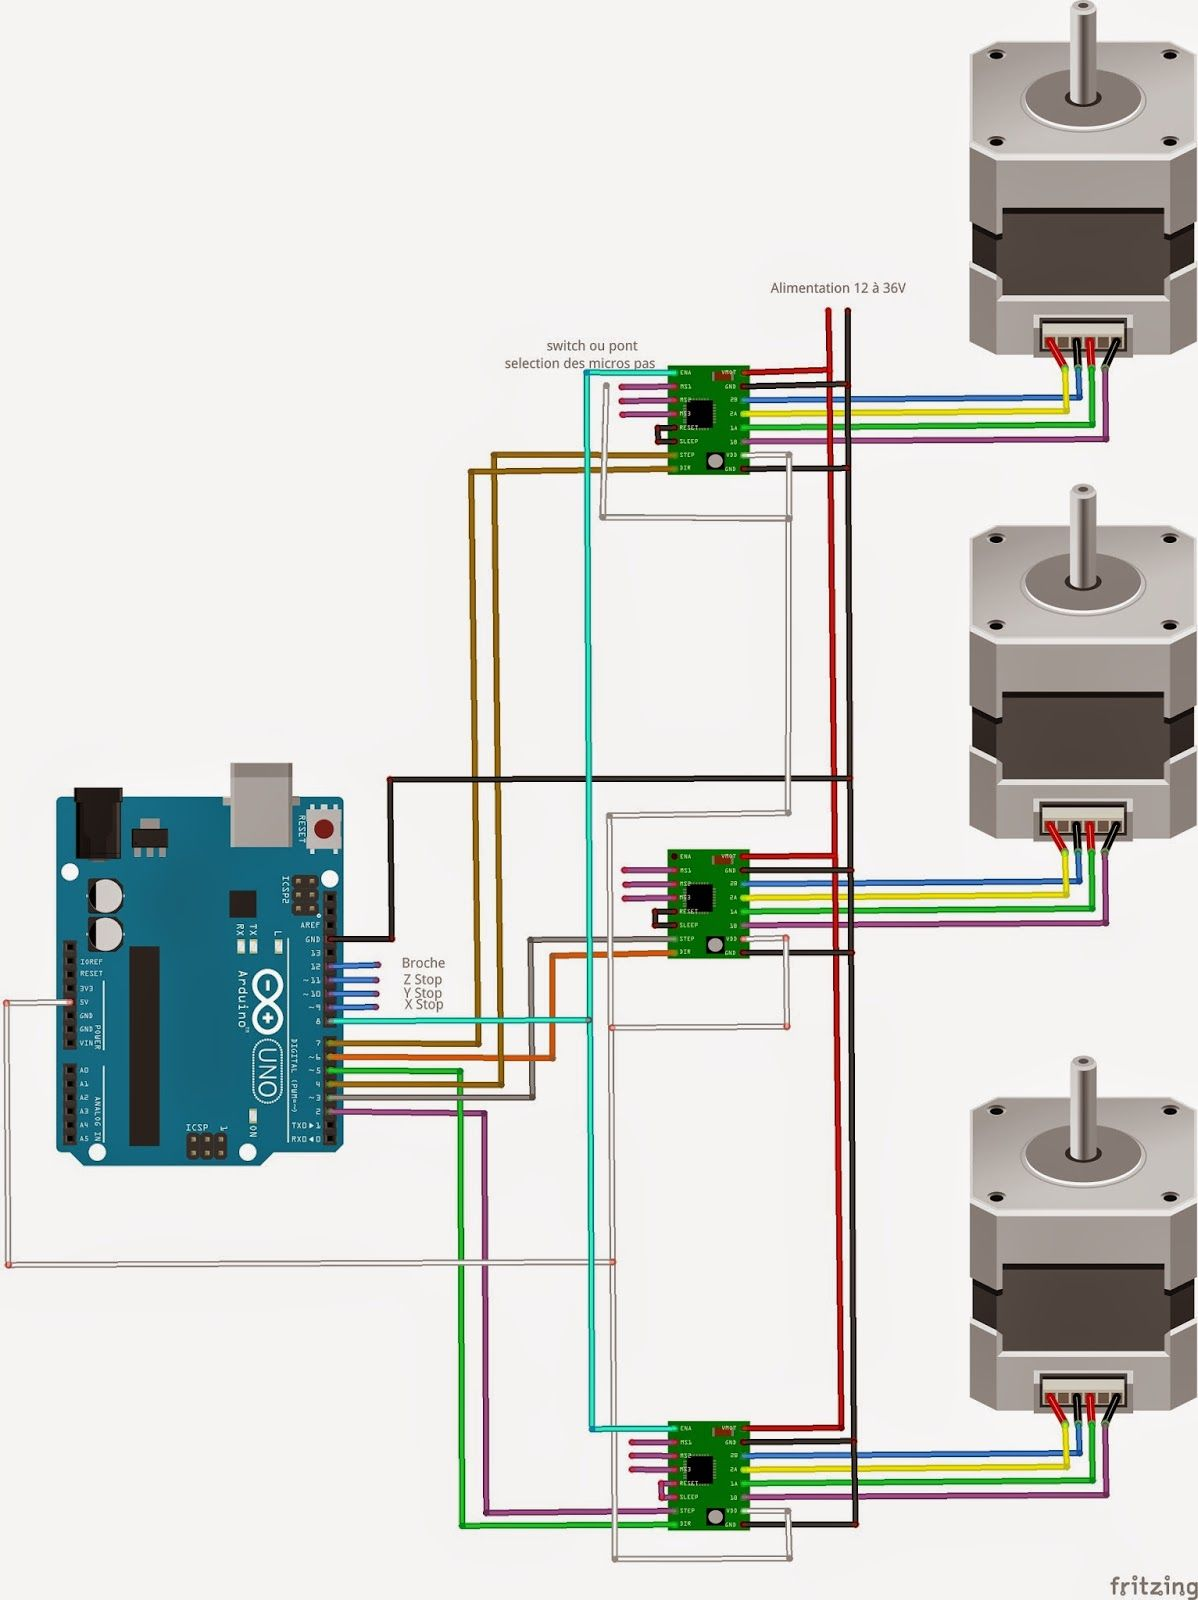 c99adc263f520a8ec4b899c2bf06b111 arduino cr�ations cnc avec arduino et grbl arduino pinterest Arduino Grbl Variable Spindle at creativeand.co